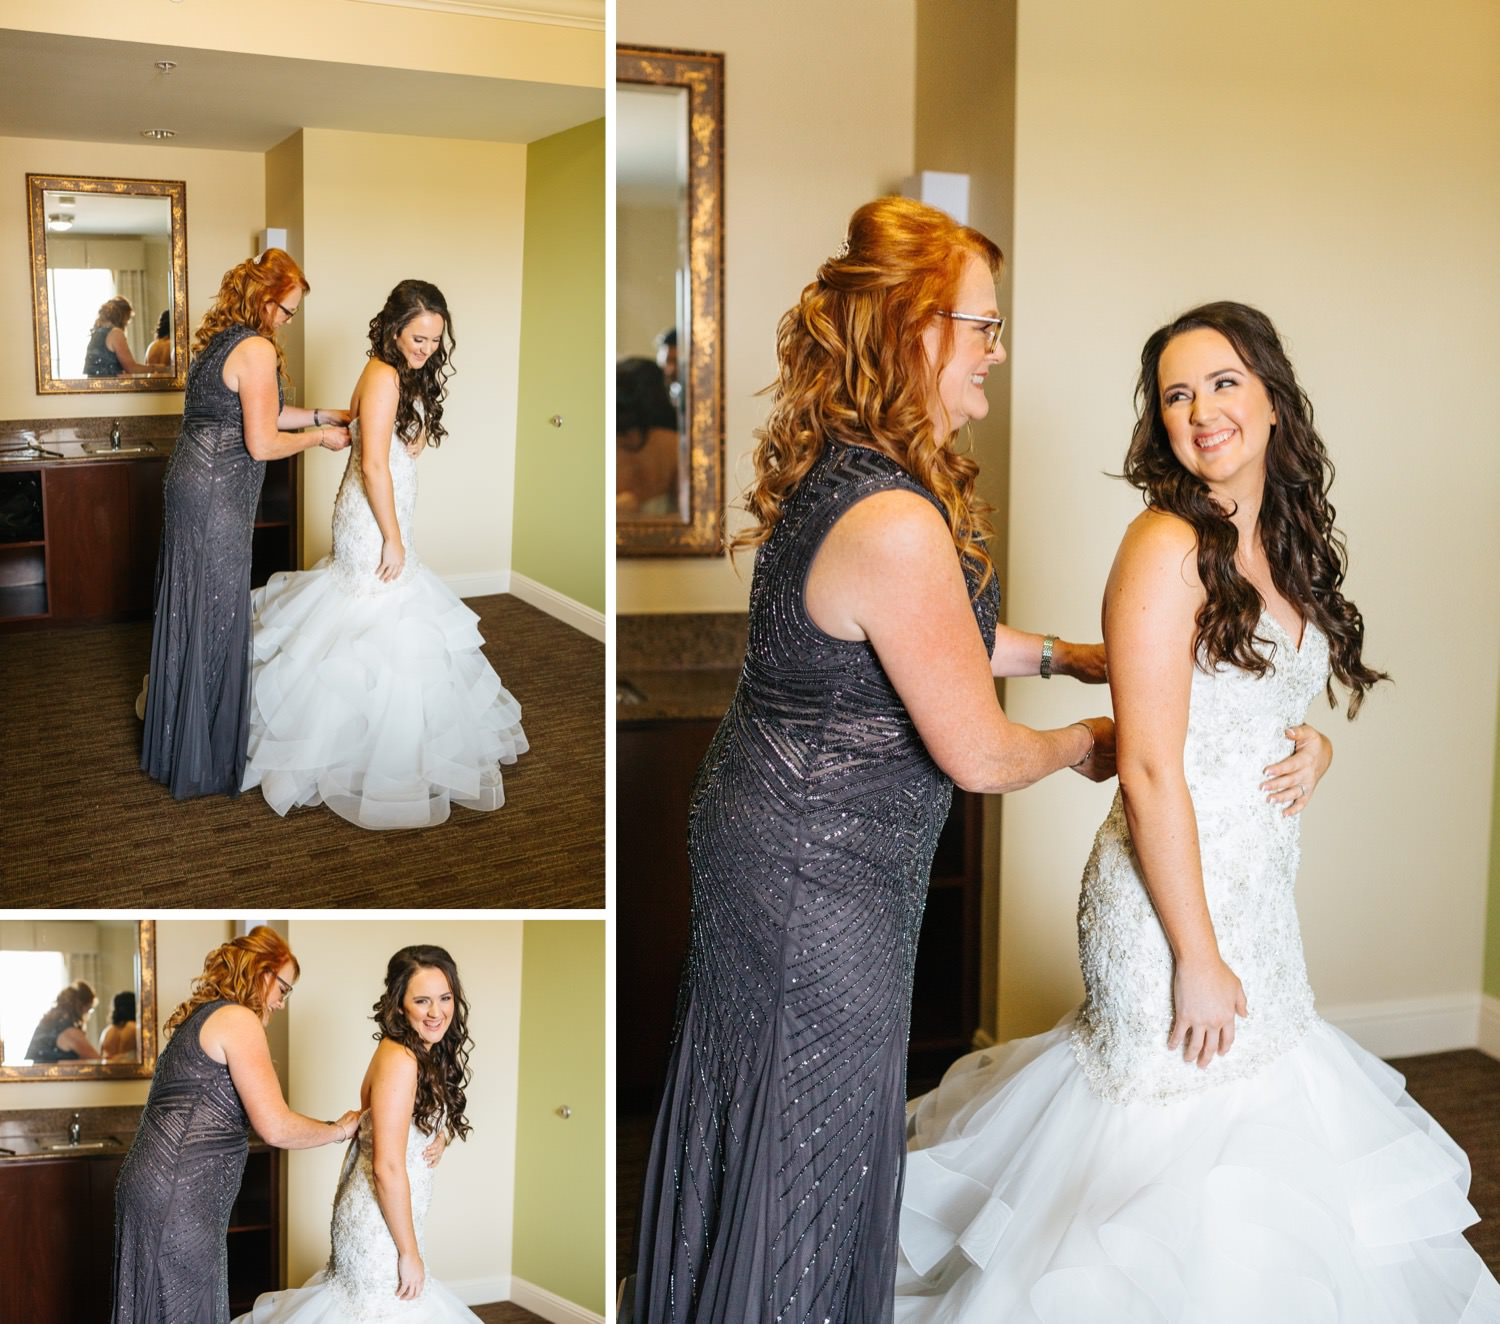 Bride's mom helping her into wedding dress - https://brittneyhannonphotography.com